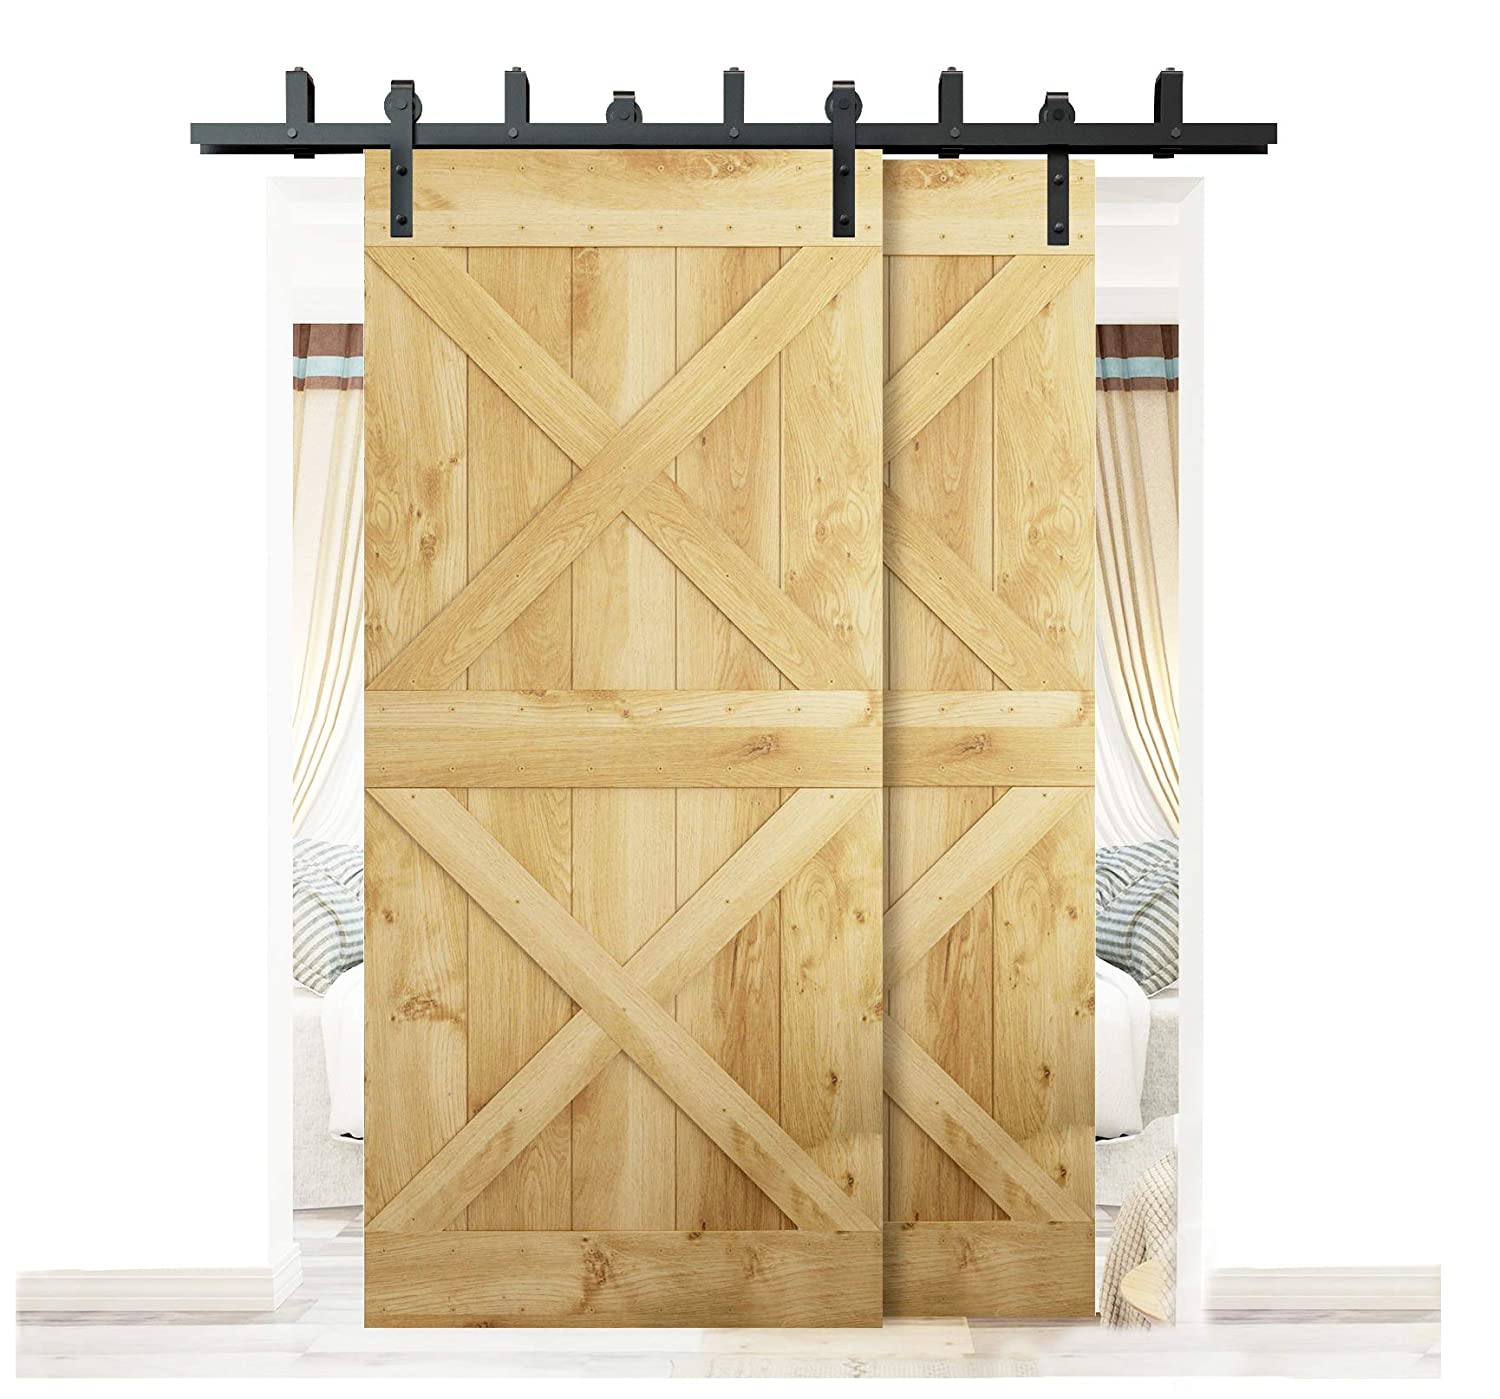 Amazon Diyhd 6ft Bypass Sliding Barn Wood Door Hardware